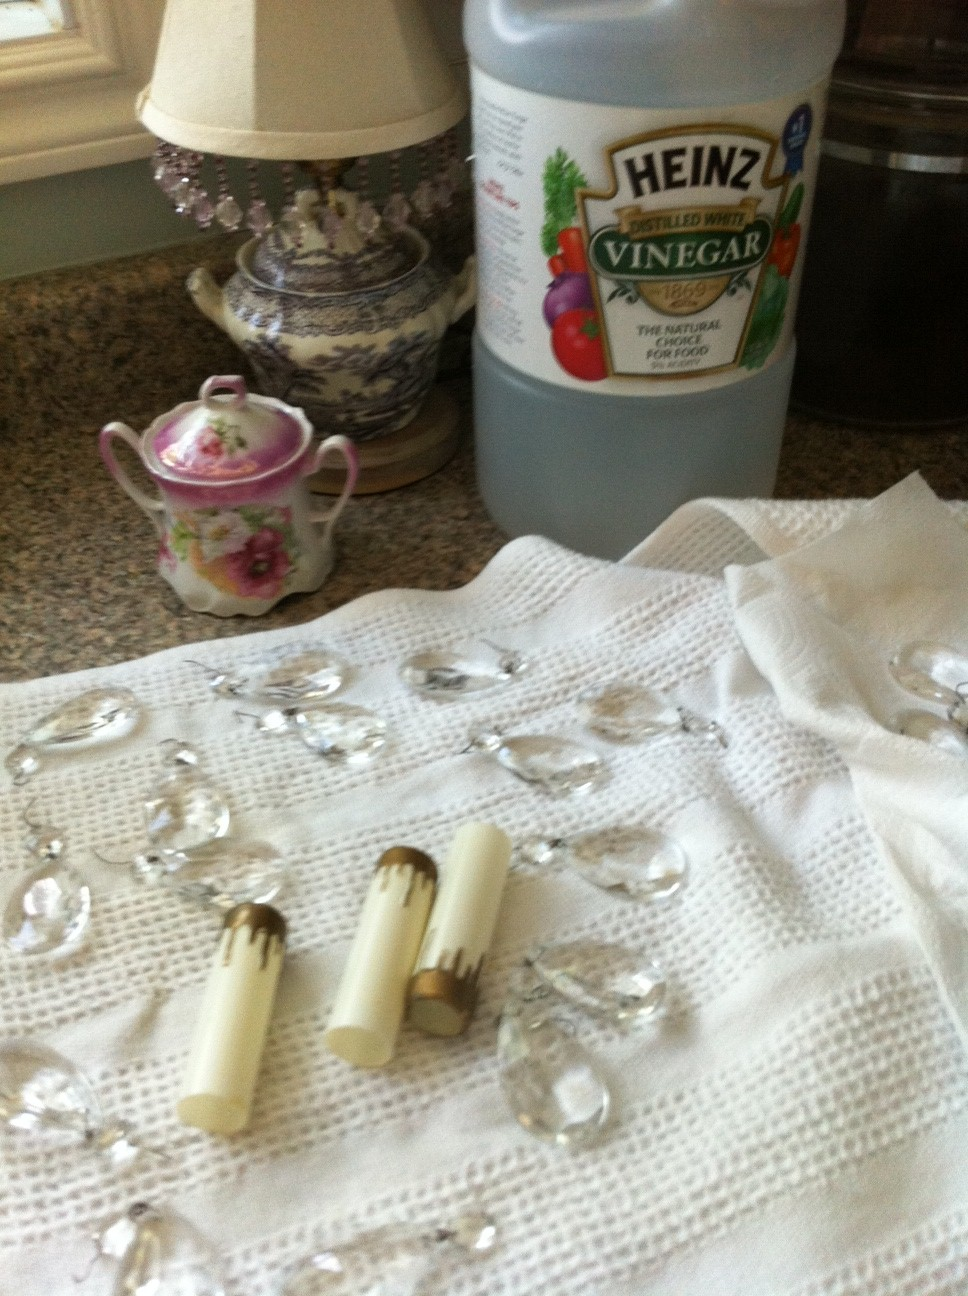 How to clean a crystal chandelier with vinegar gallery how to cleaning chandelier crystals vinegar image collections arubaitofo Gallery